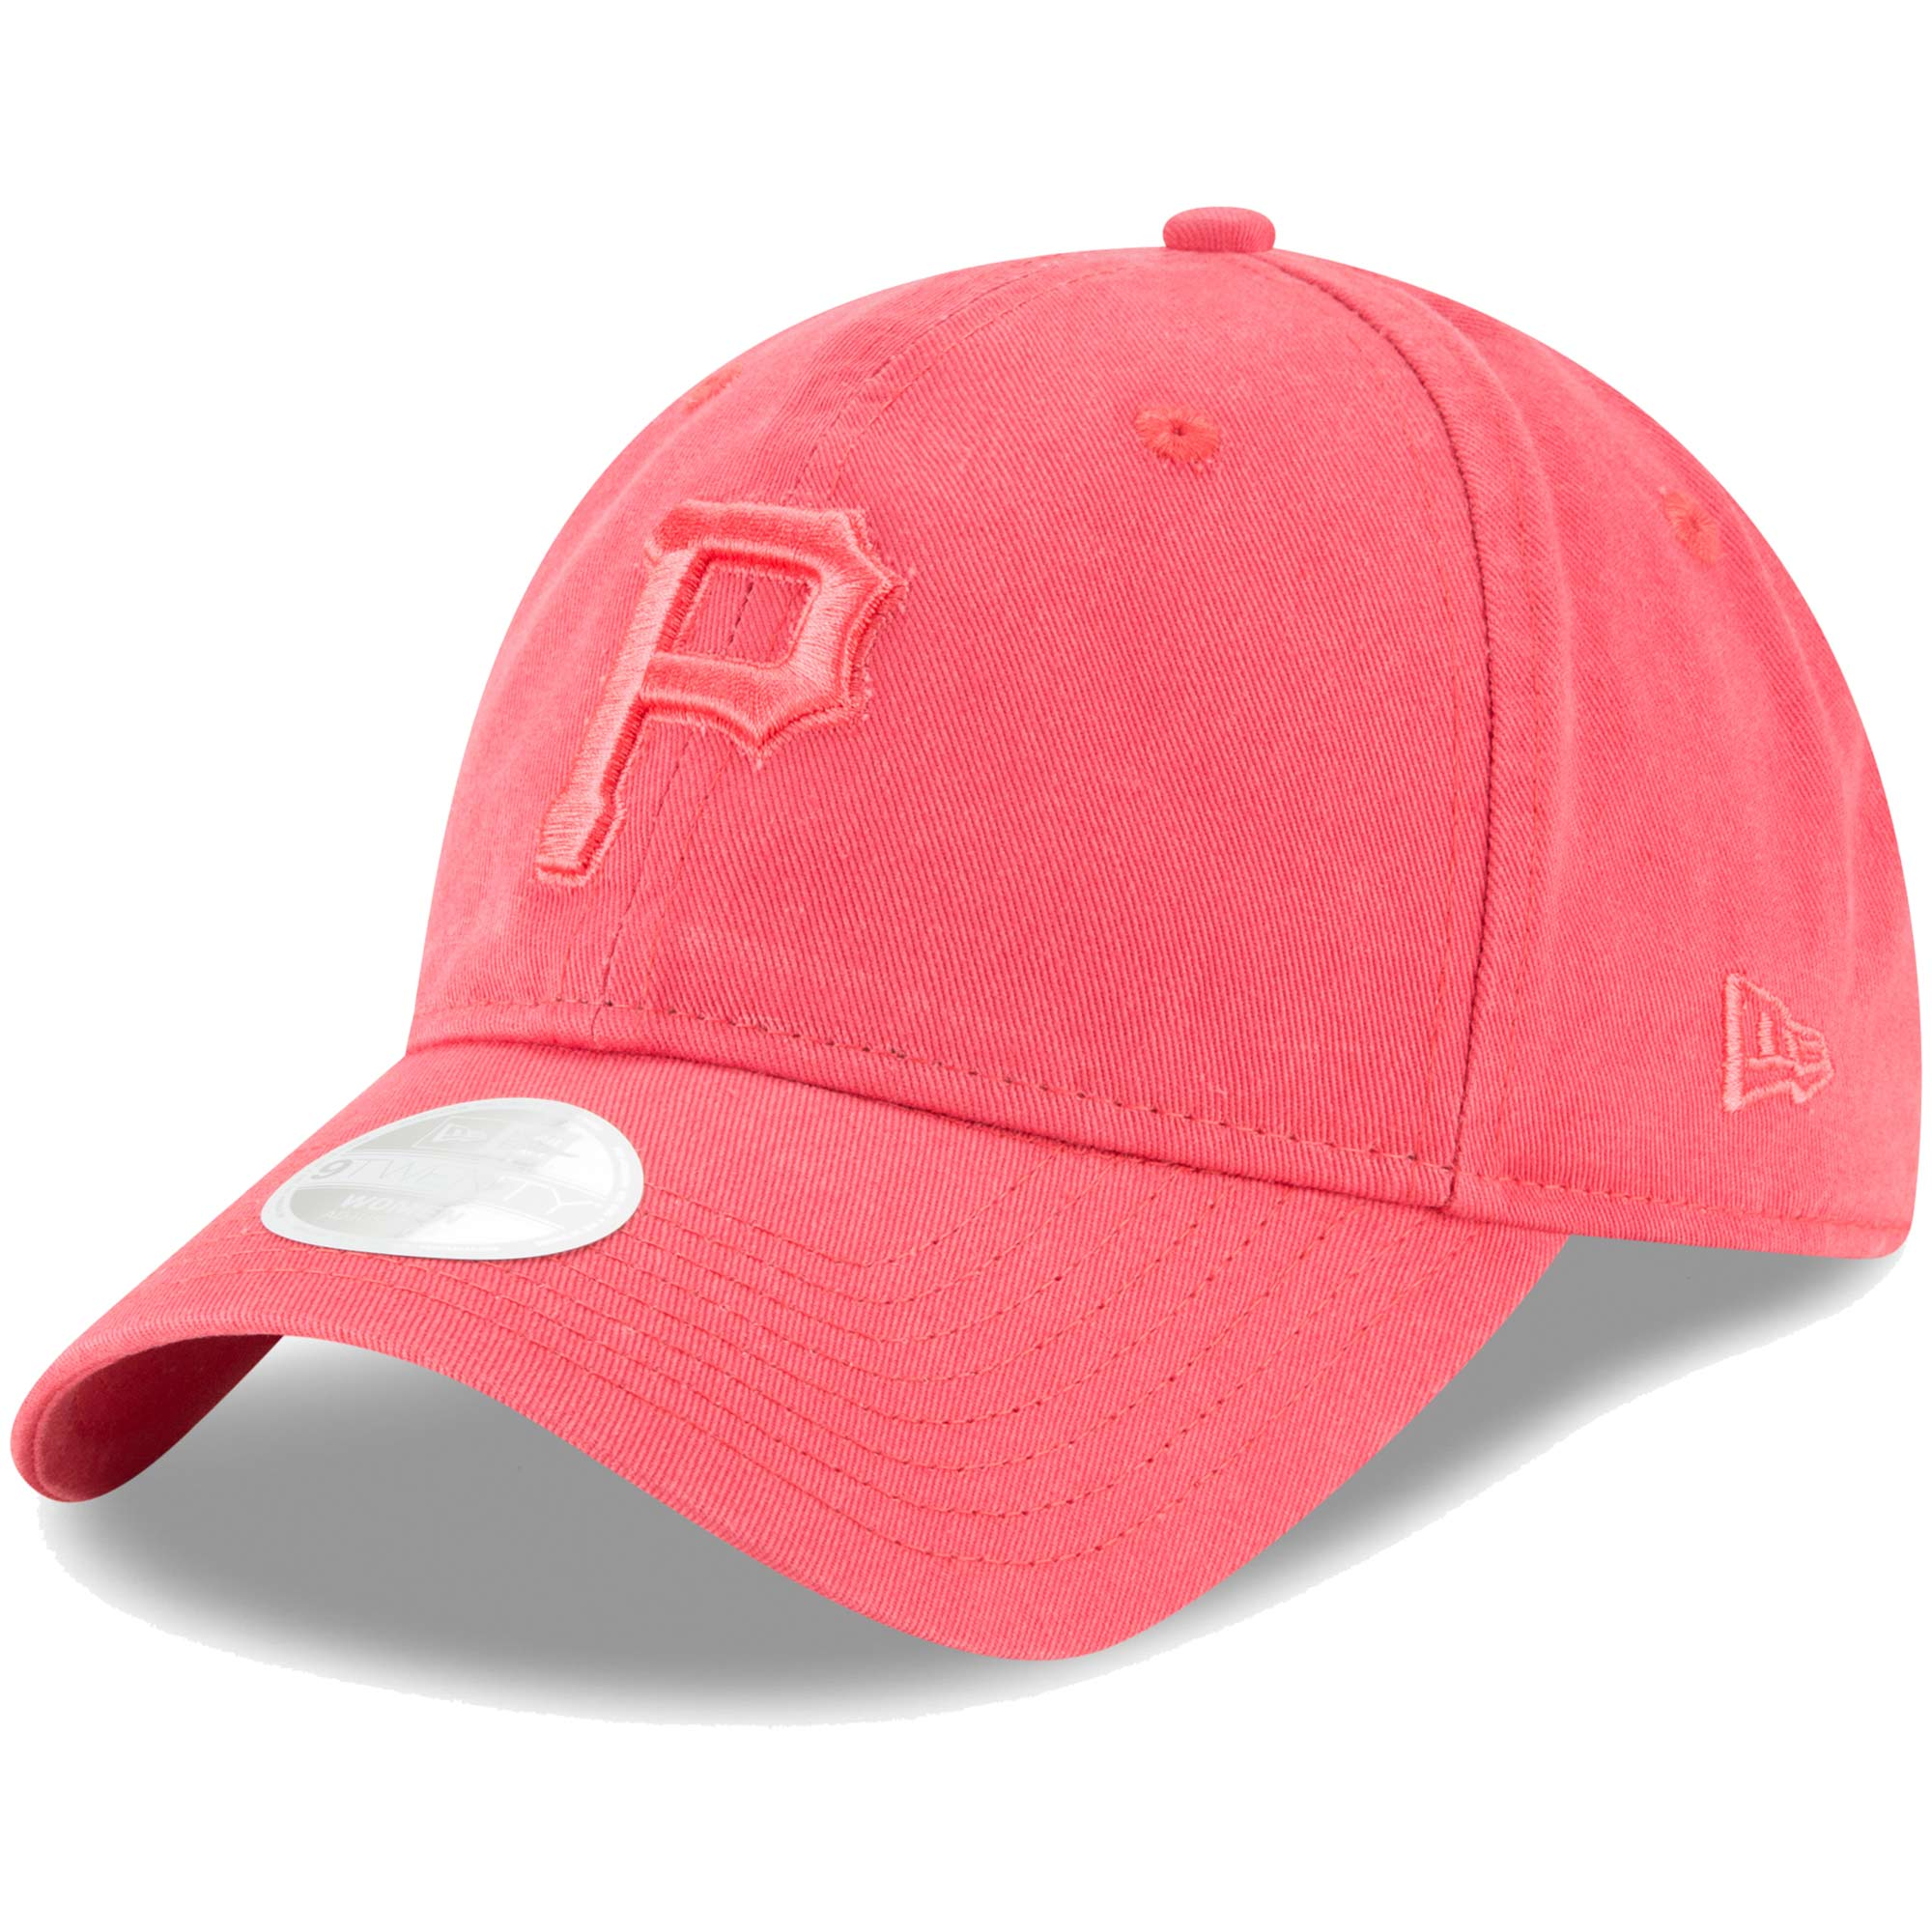 Pittsburgh Pirates New Era Women's Core Classic Twill 9TWENTY Adjustable Hat - Pink - OSFA